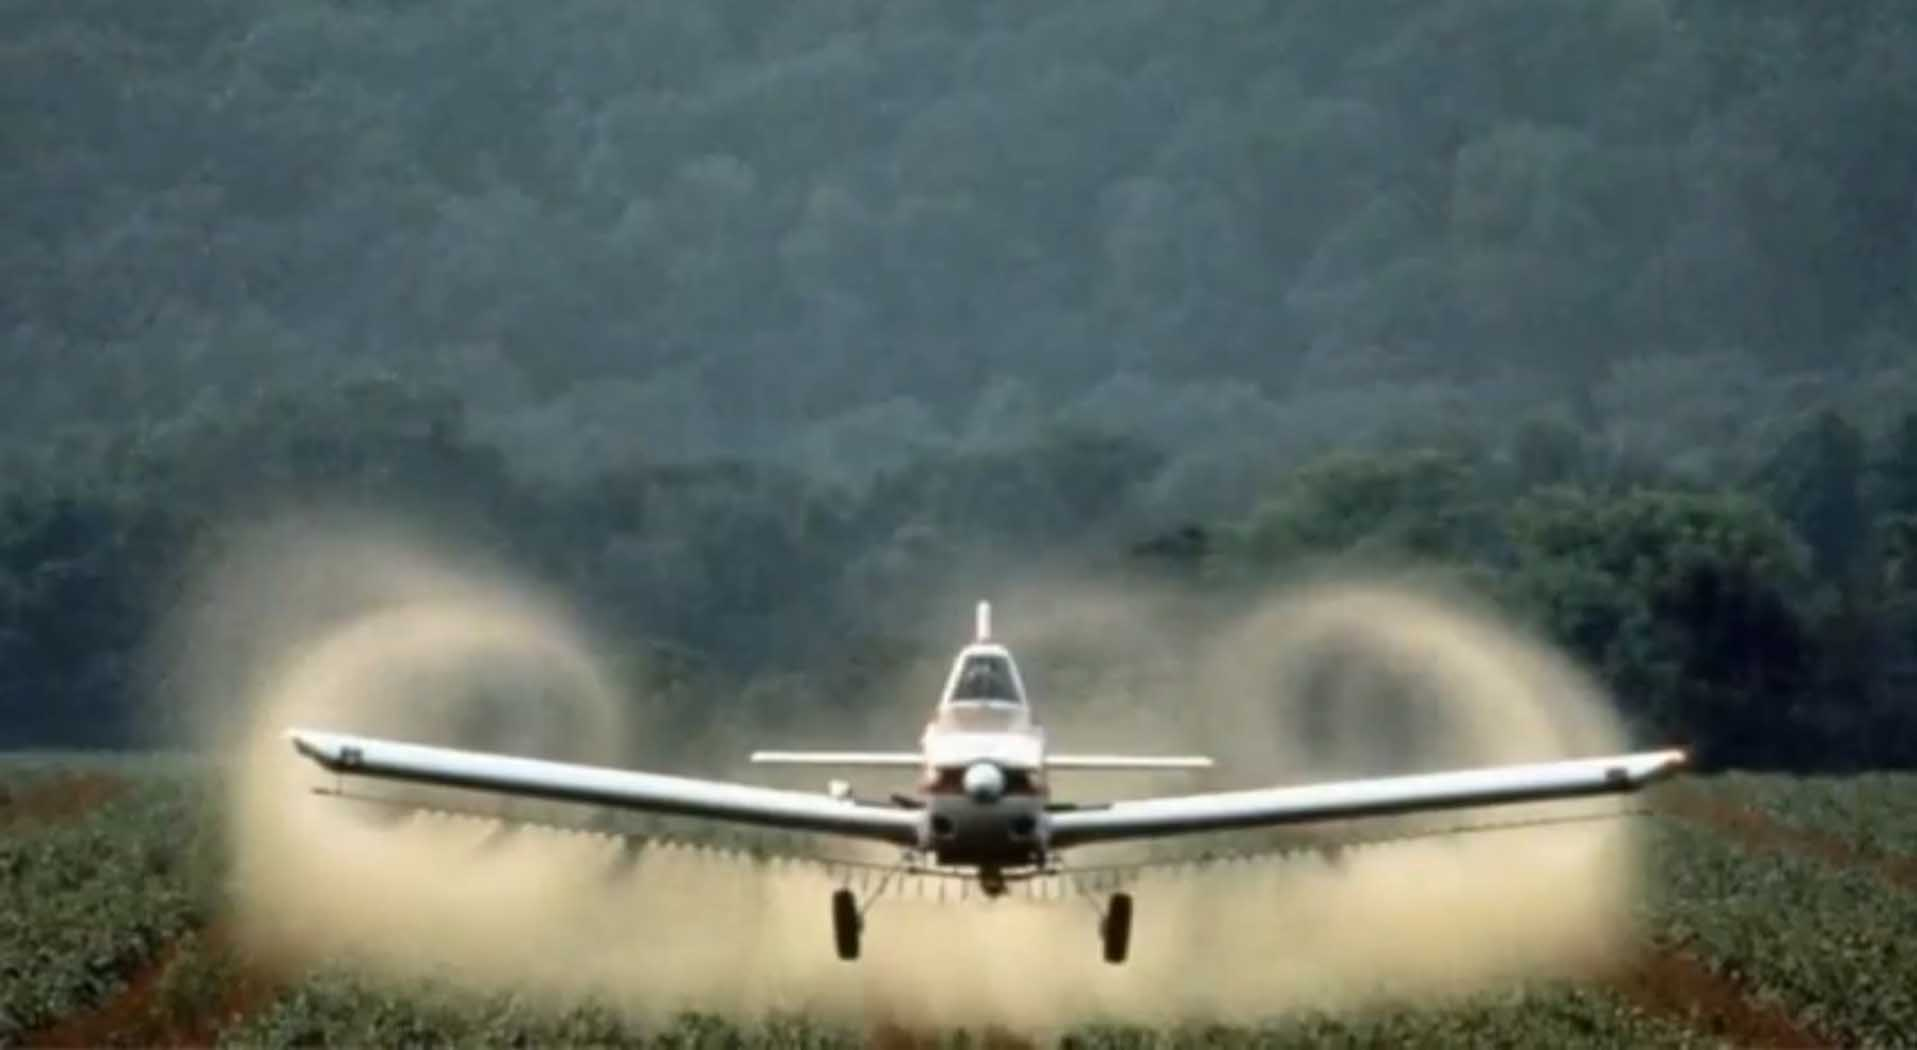 Crops Being Sprayed